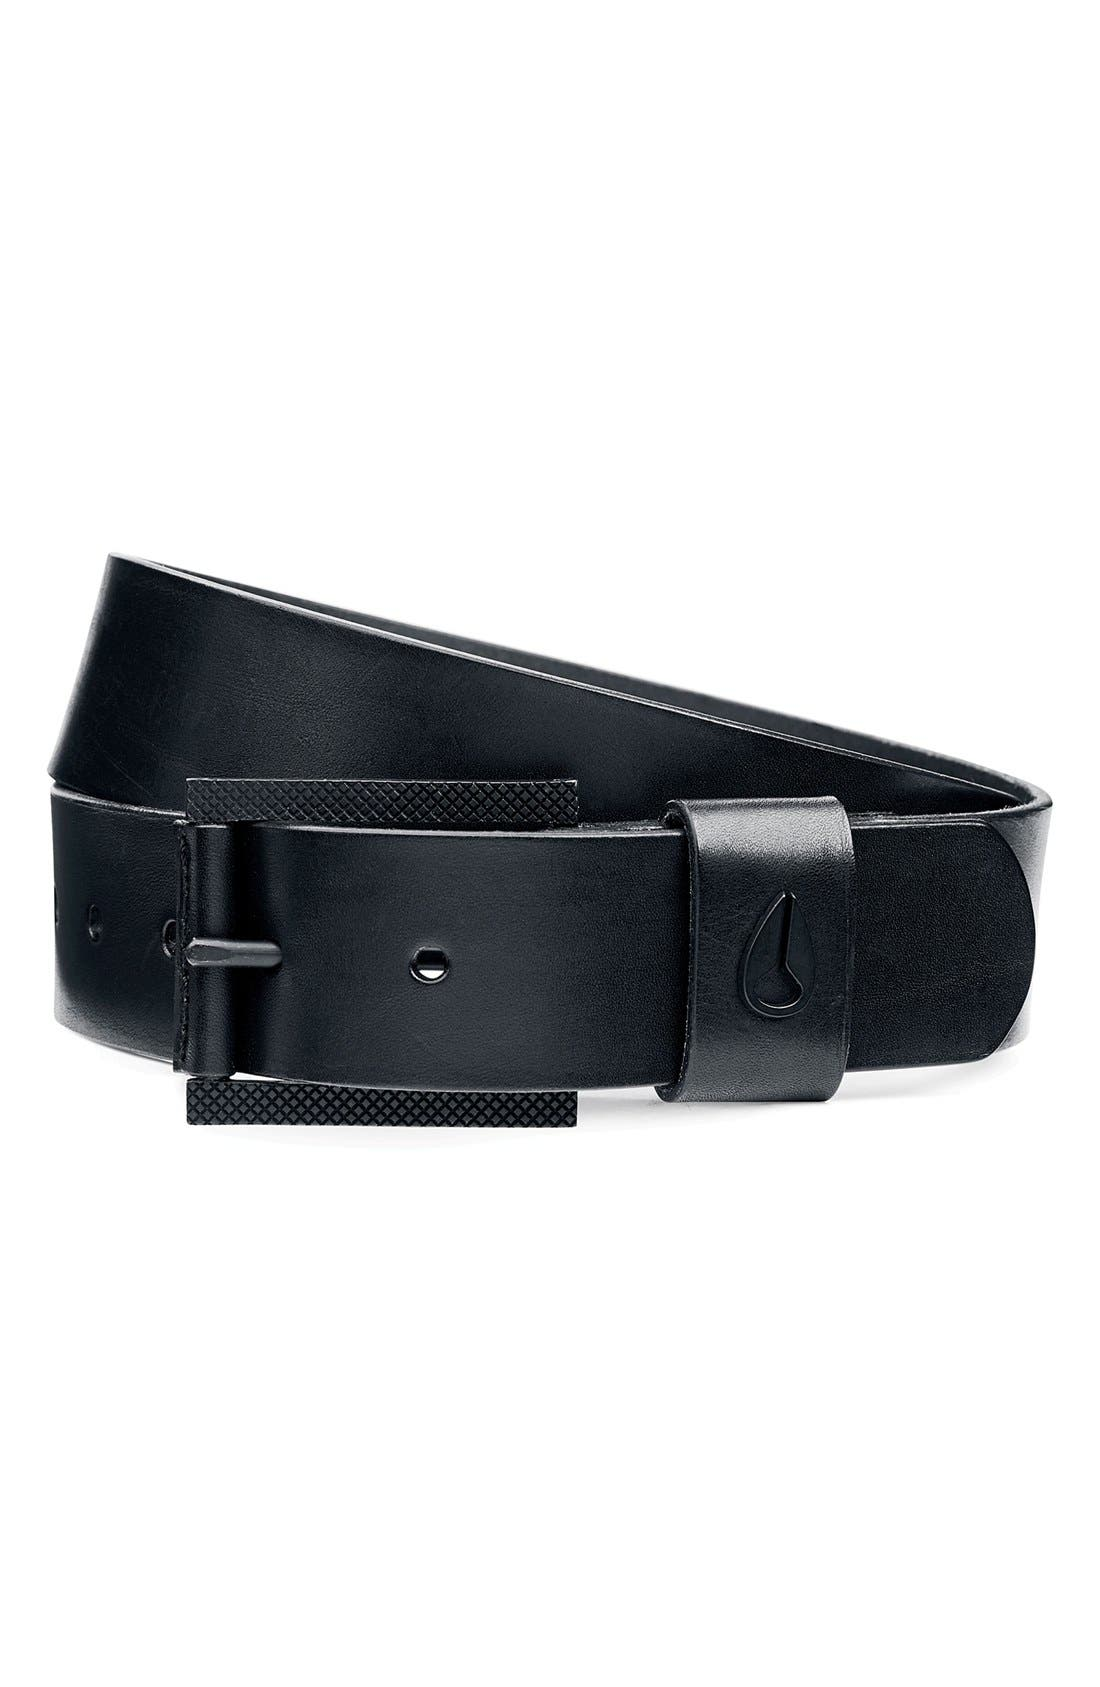 Alternate Image 1 Selected - Nixon 'Americana' Leather Belt